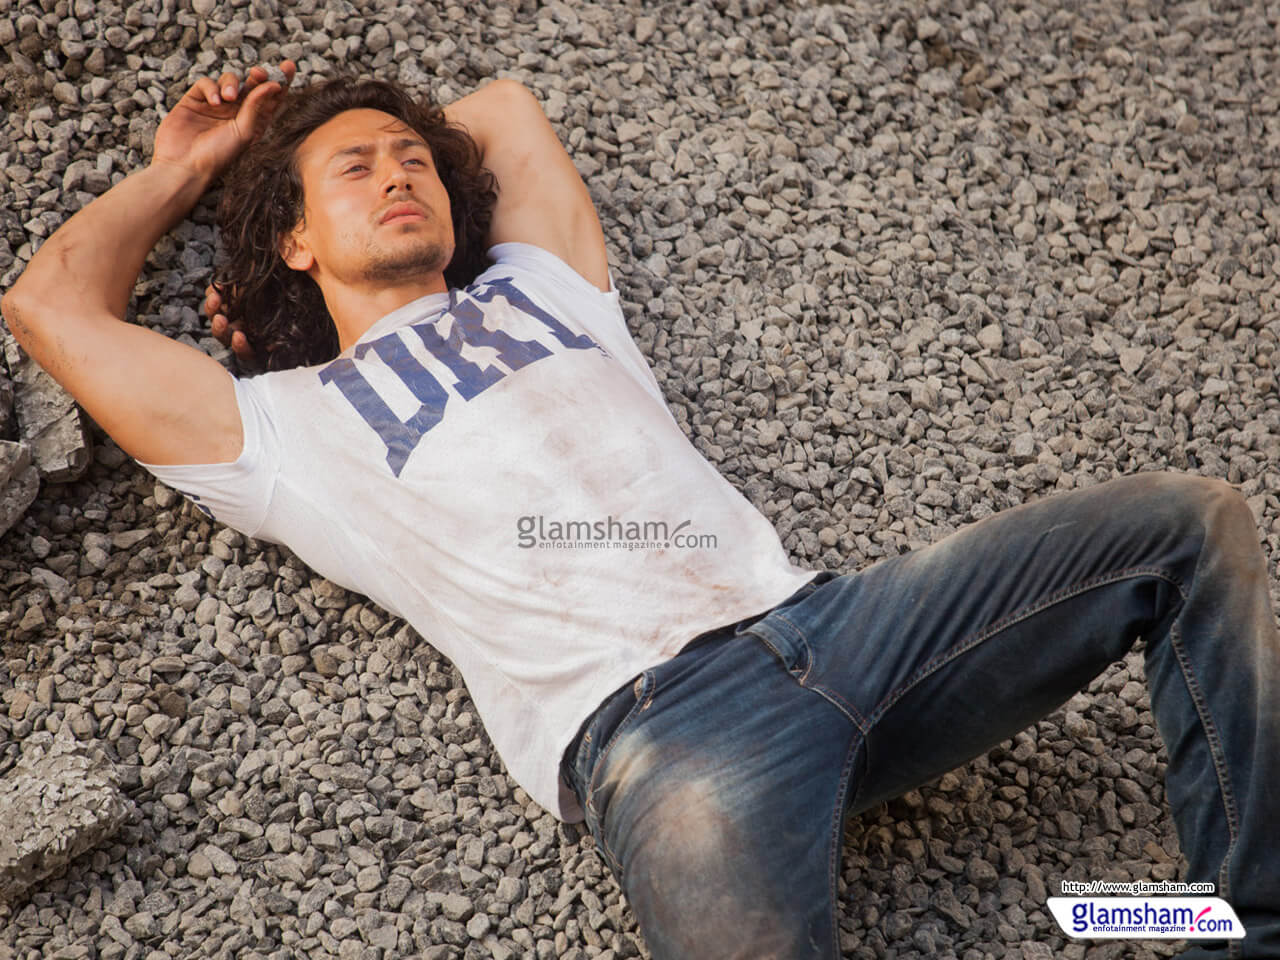 Tiger Shroff Age, Photos(image), Song, Movie, Height, Girlfriend, Sister, Date Of Birth, Net Worth, Biography, Education, Awards, Instagram, Twitter, Facebook, Wiki, Imdb, Youtube (12)